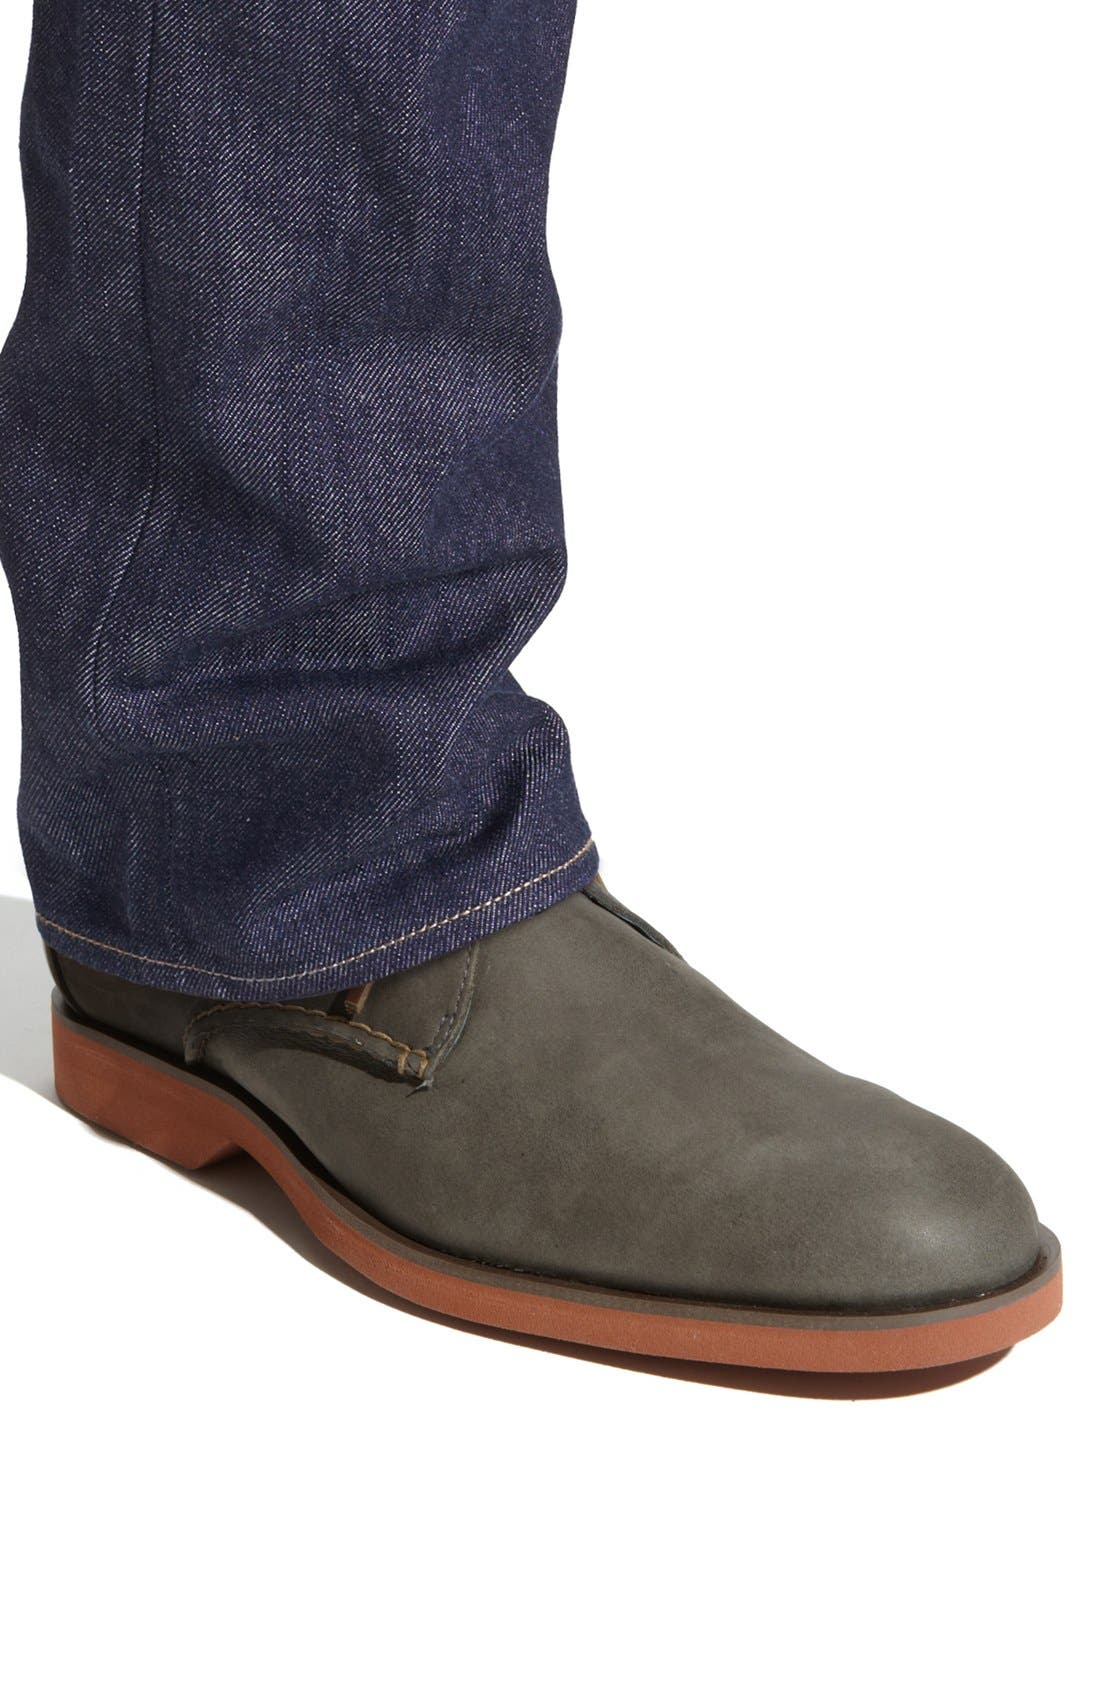 Top-Sider<sup>®</sup> 'Boat Ox' Chukka Boot,                             Alternate thumbnail 5, color,                             020